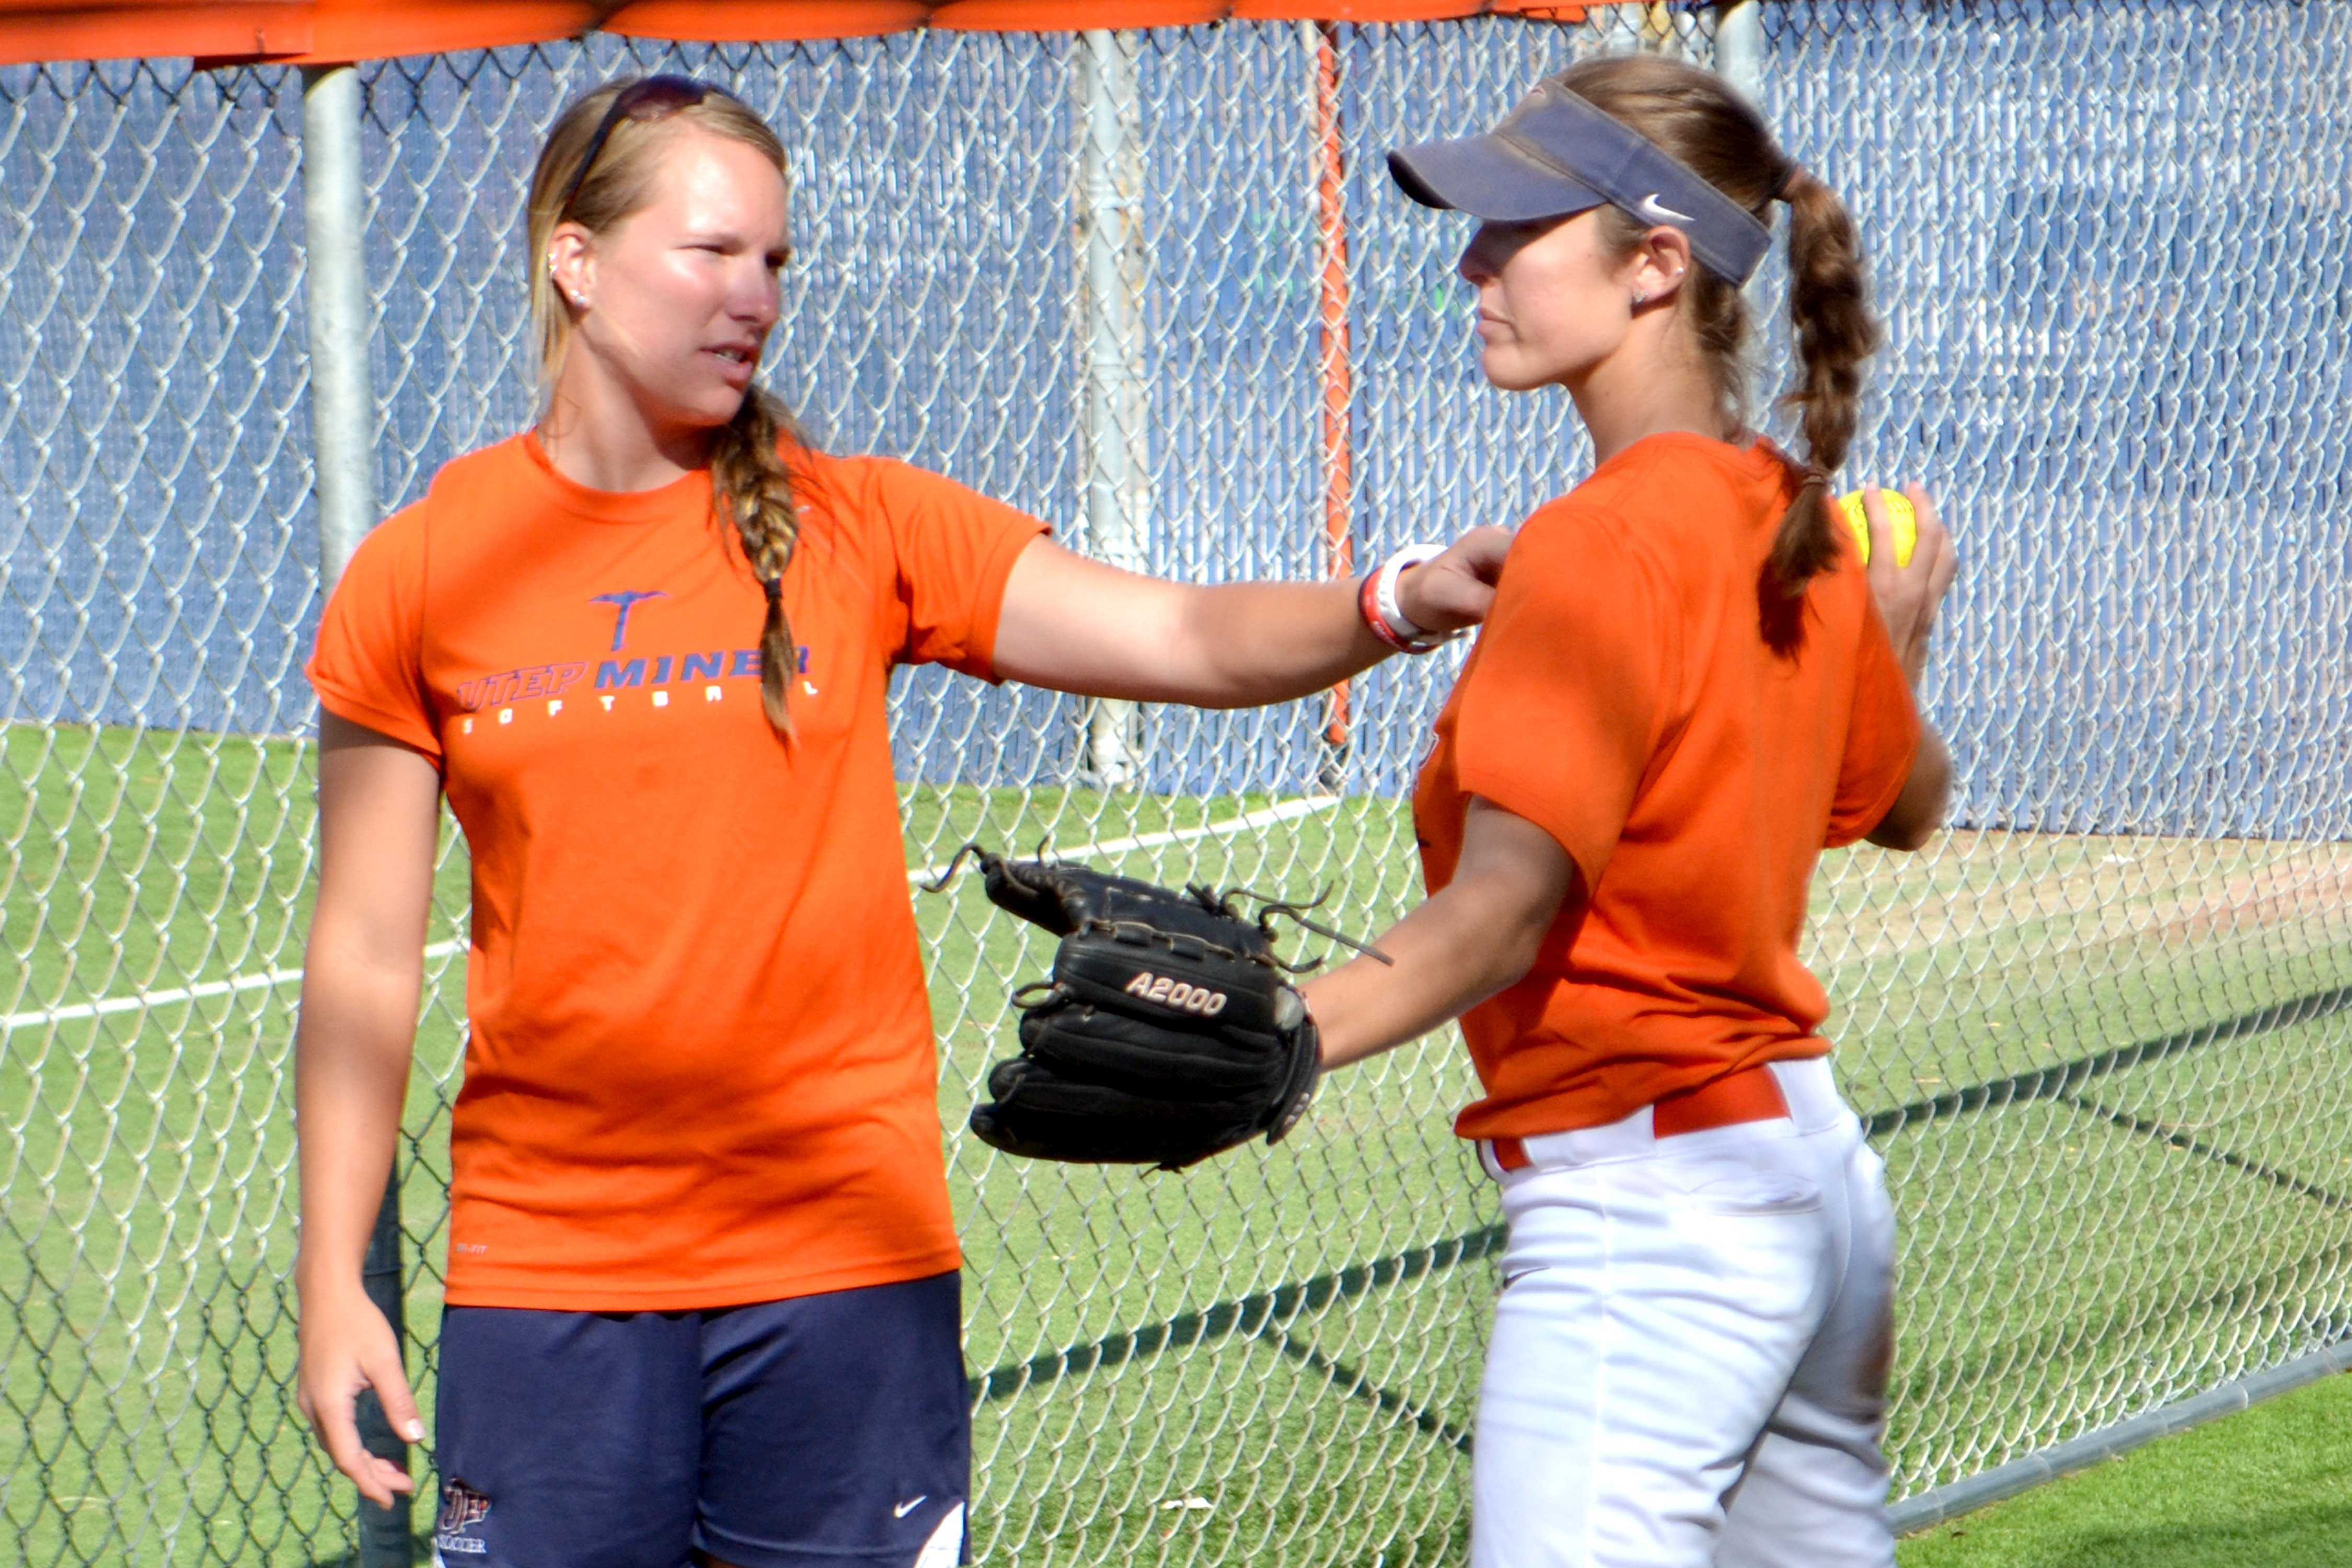 Pitching coach Sarah Plourde (left) works with junior pitcher Danielle Pearson (right) in the pitching cage.